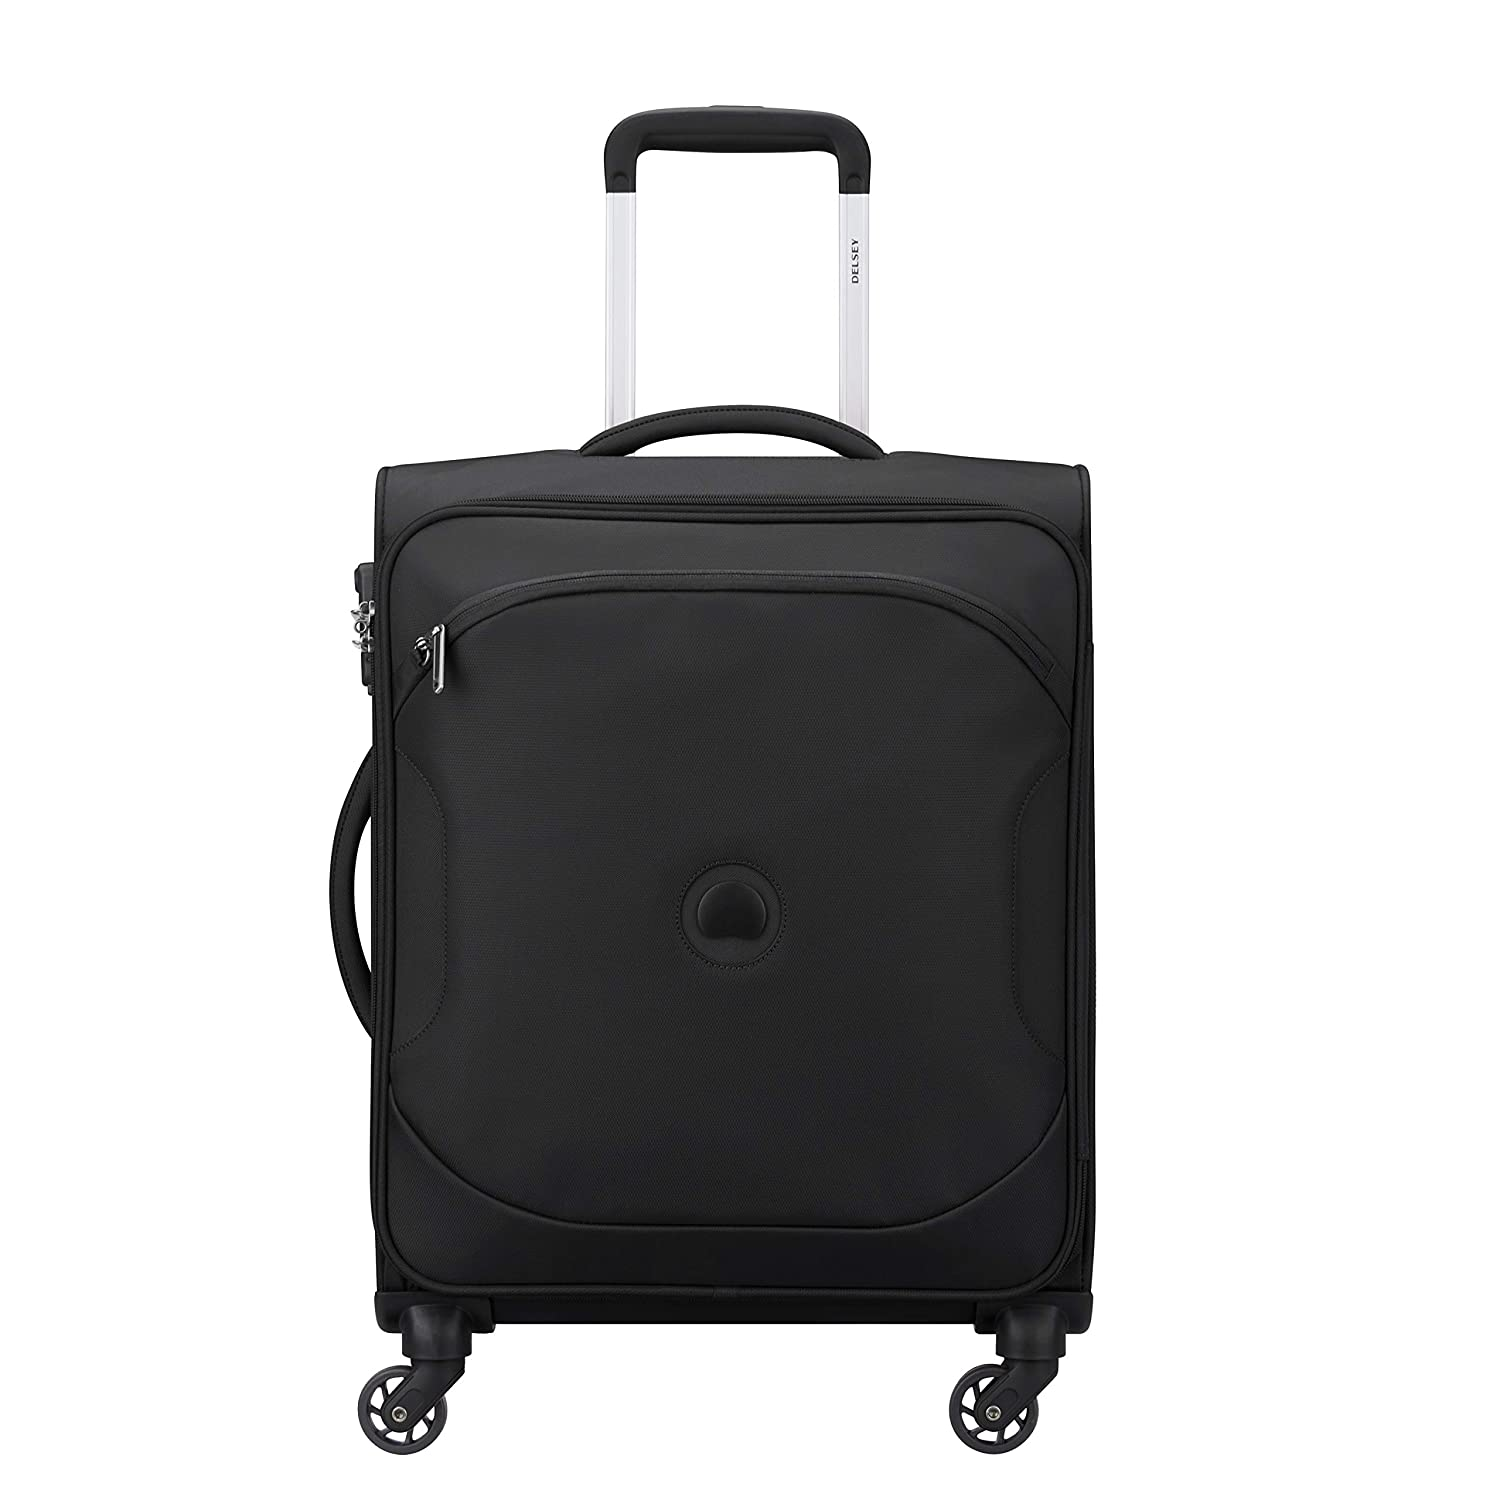 Delsey Polyester 68 Cms Black Softsided Check-In Luggage